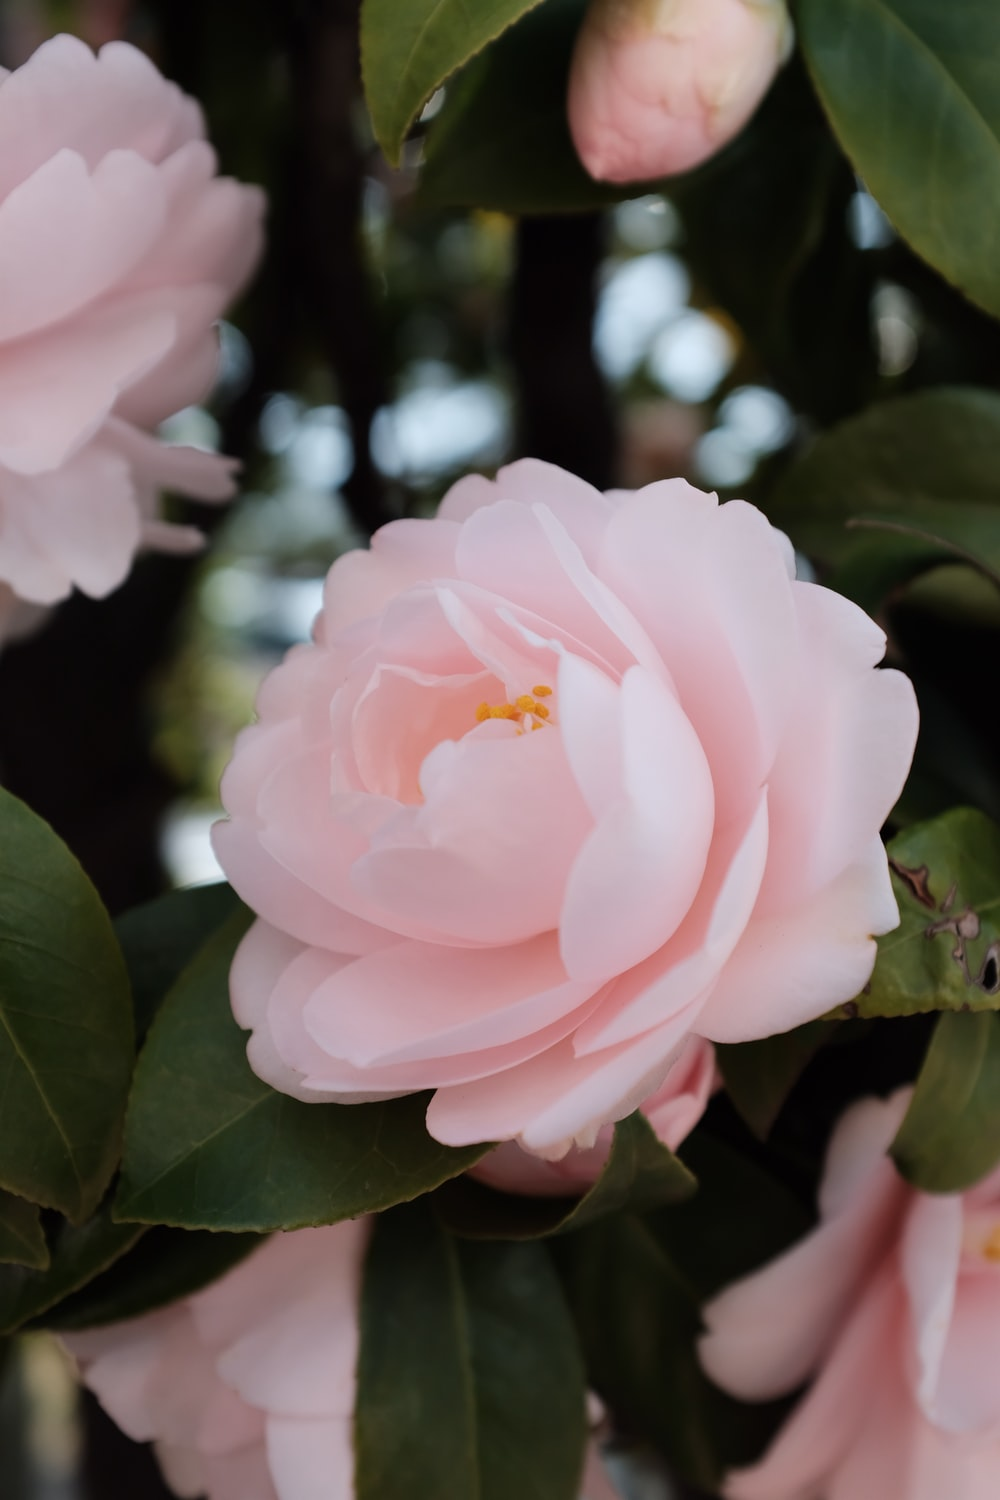 selective focus photography of pink-petaled flower